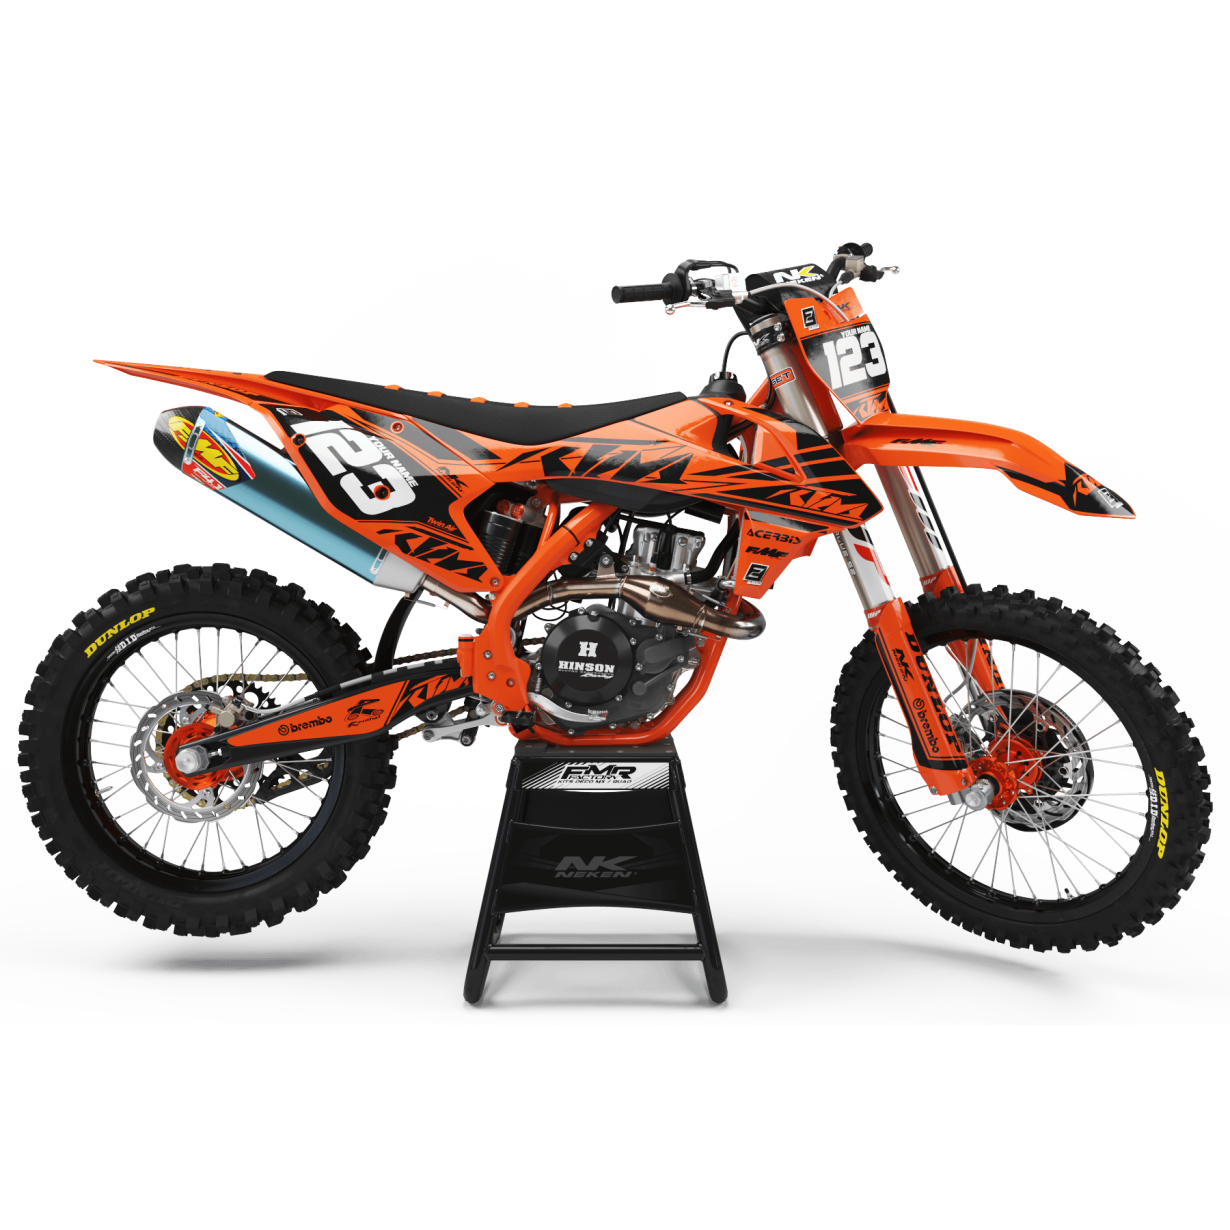 Kit déco Perso FACTORY Neken noir/orange MA32C ktm